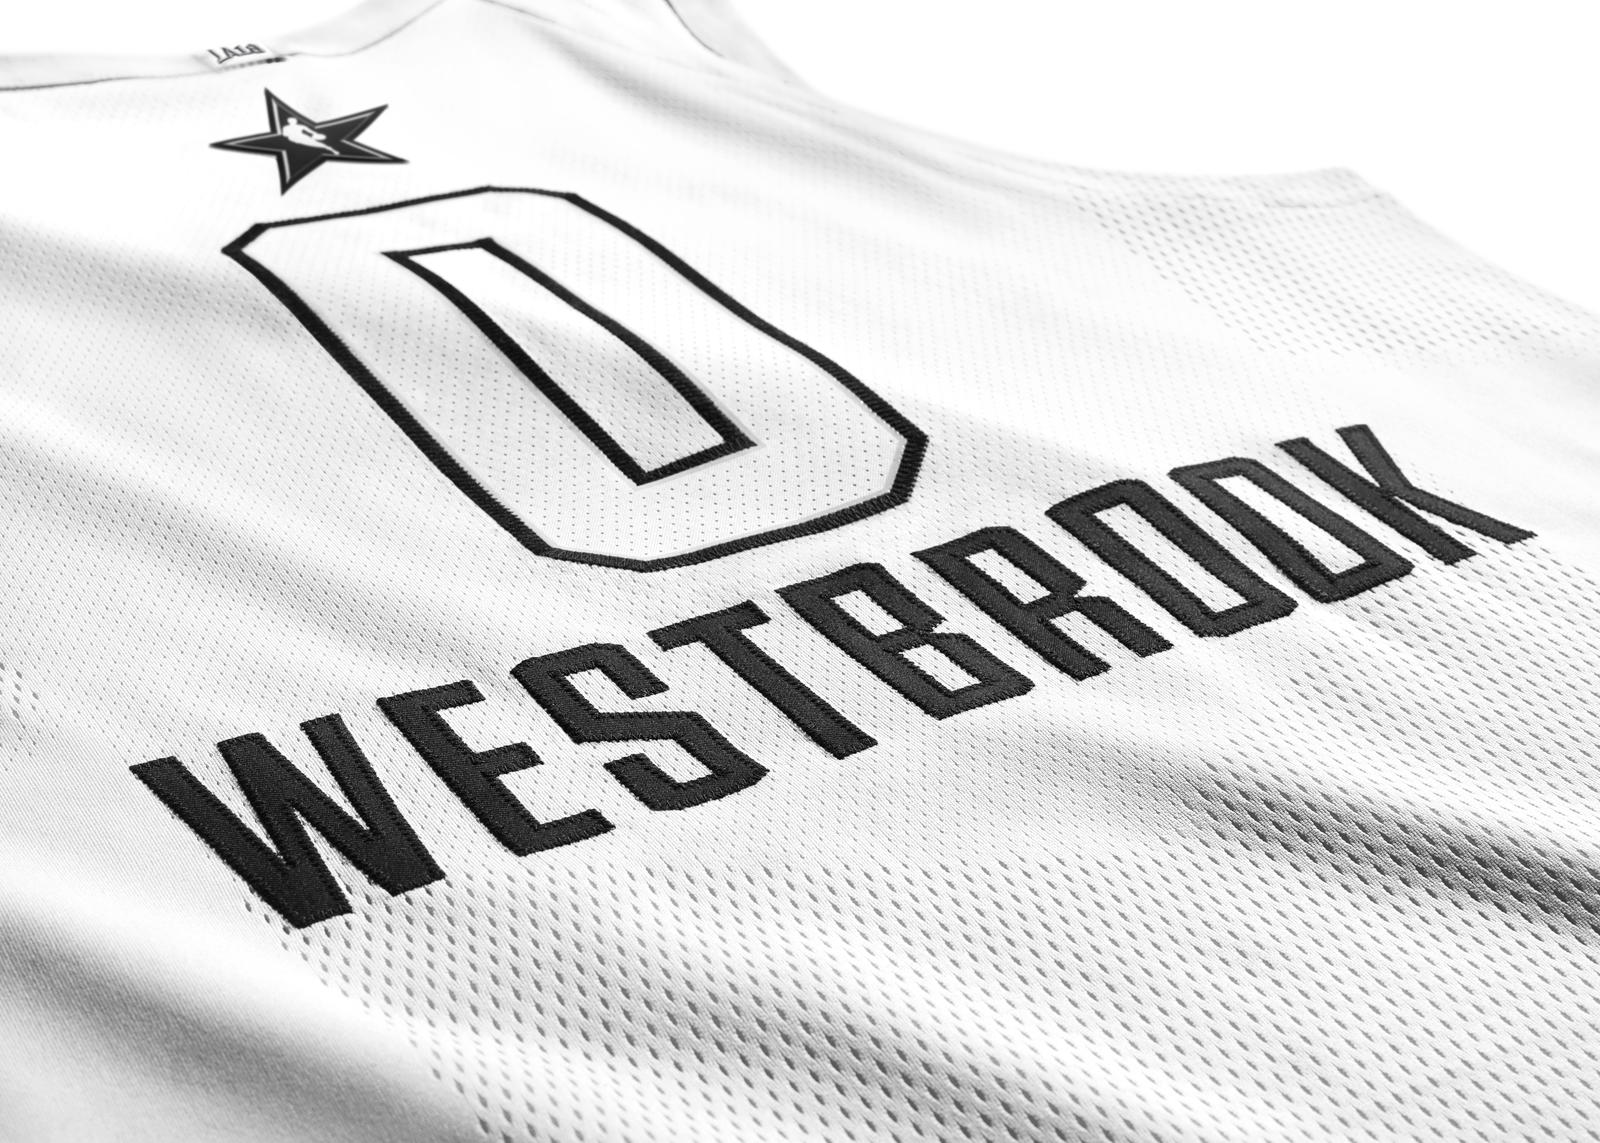 Introducing the First-Ever Jordan Brand NBA All-Star Edition Uniforms 31